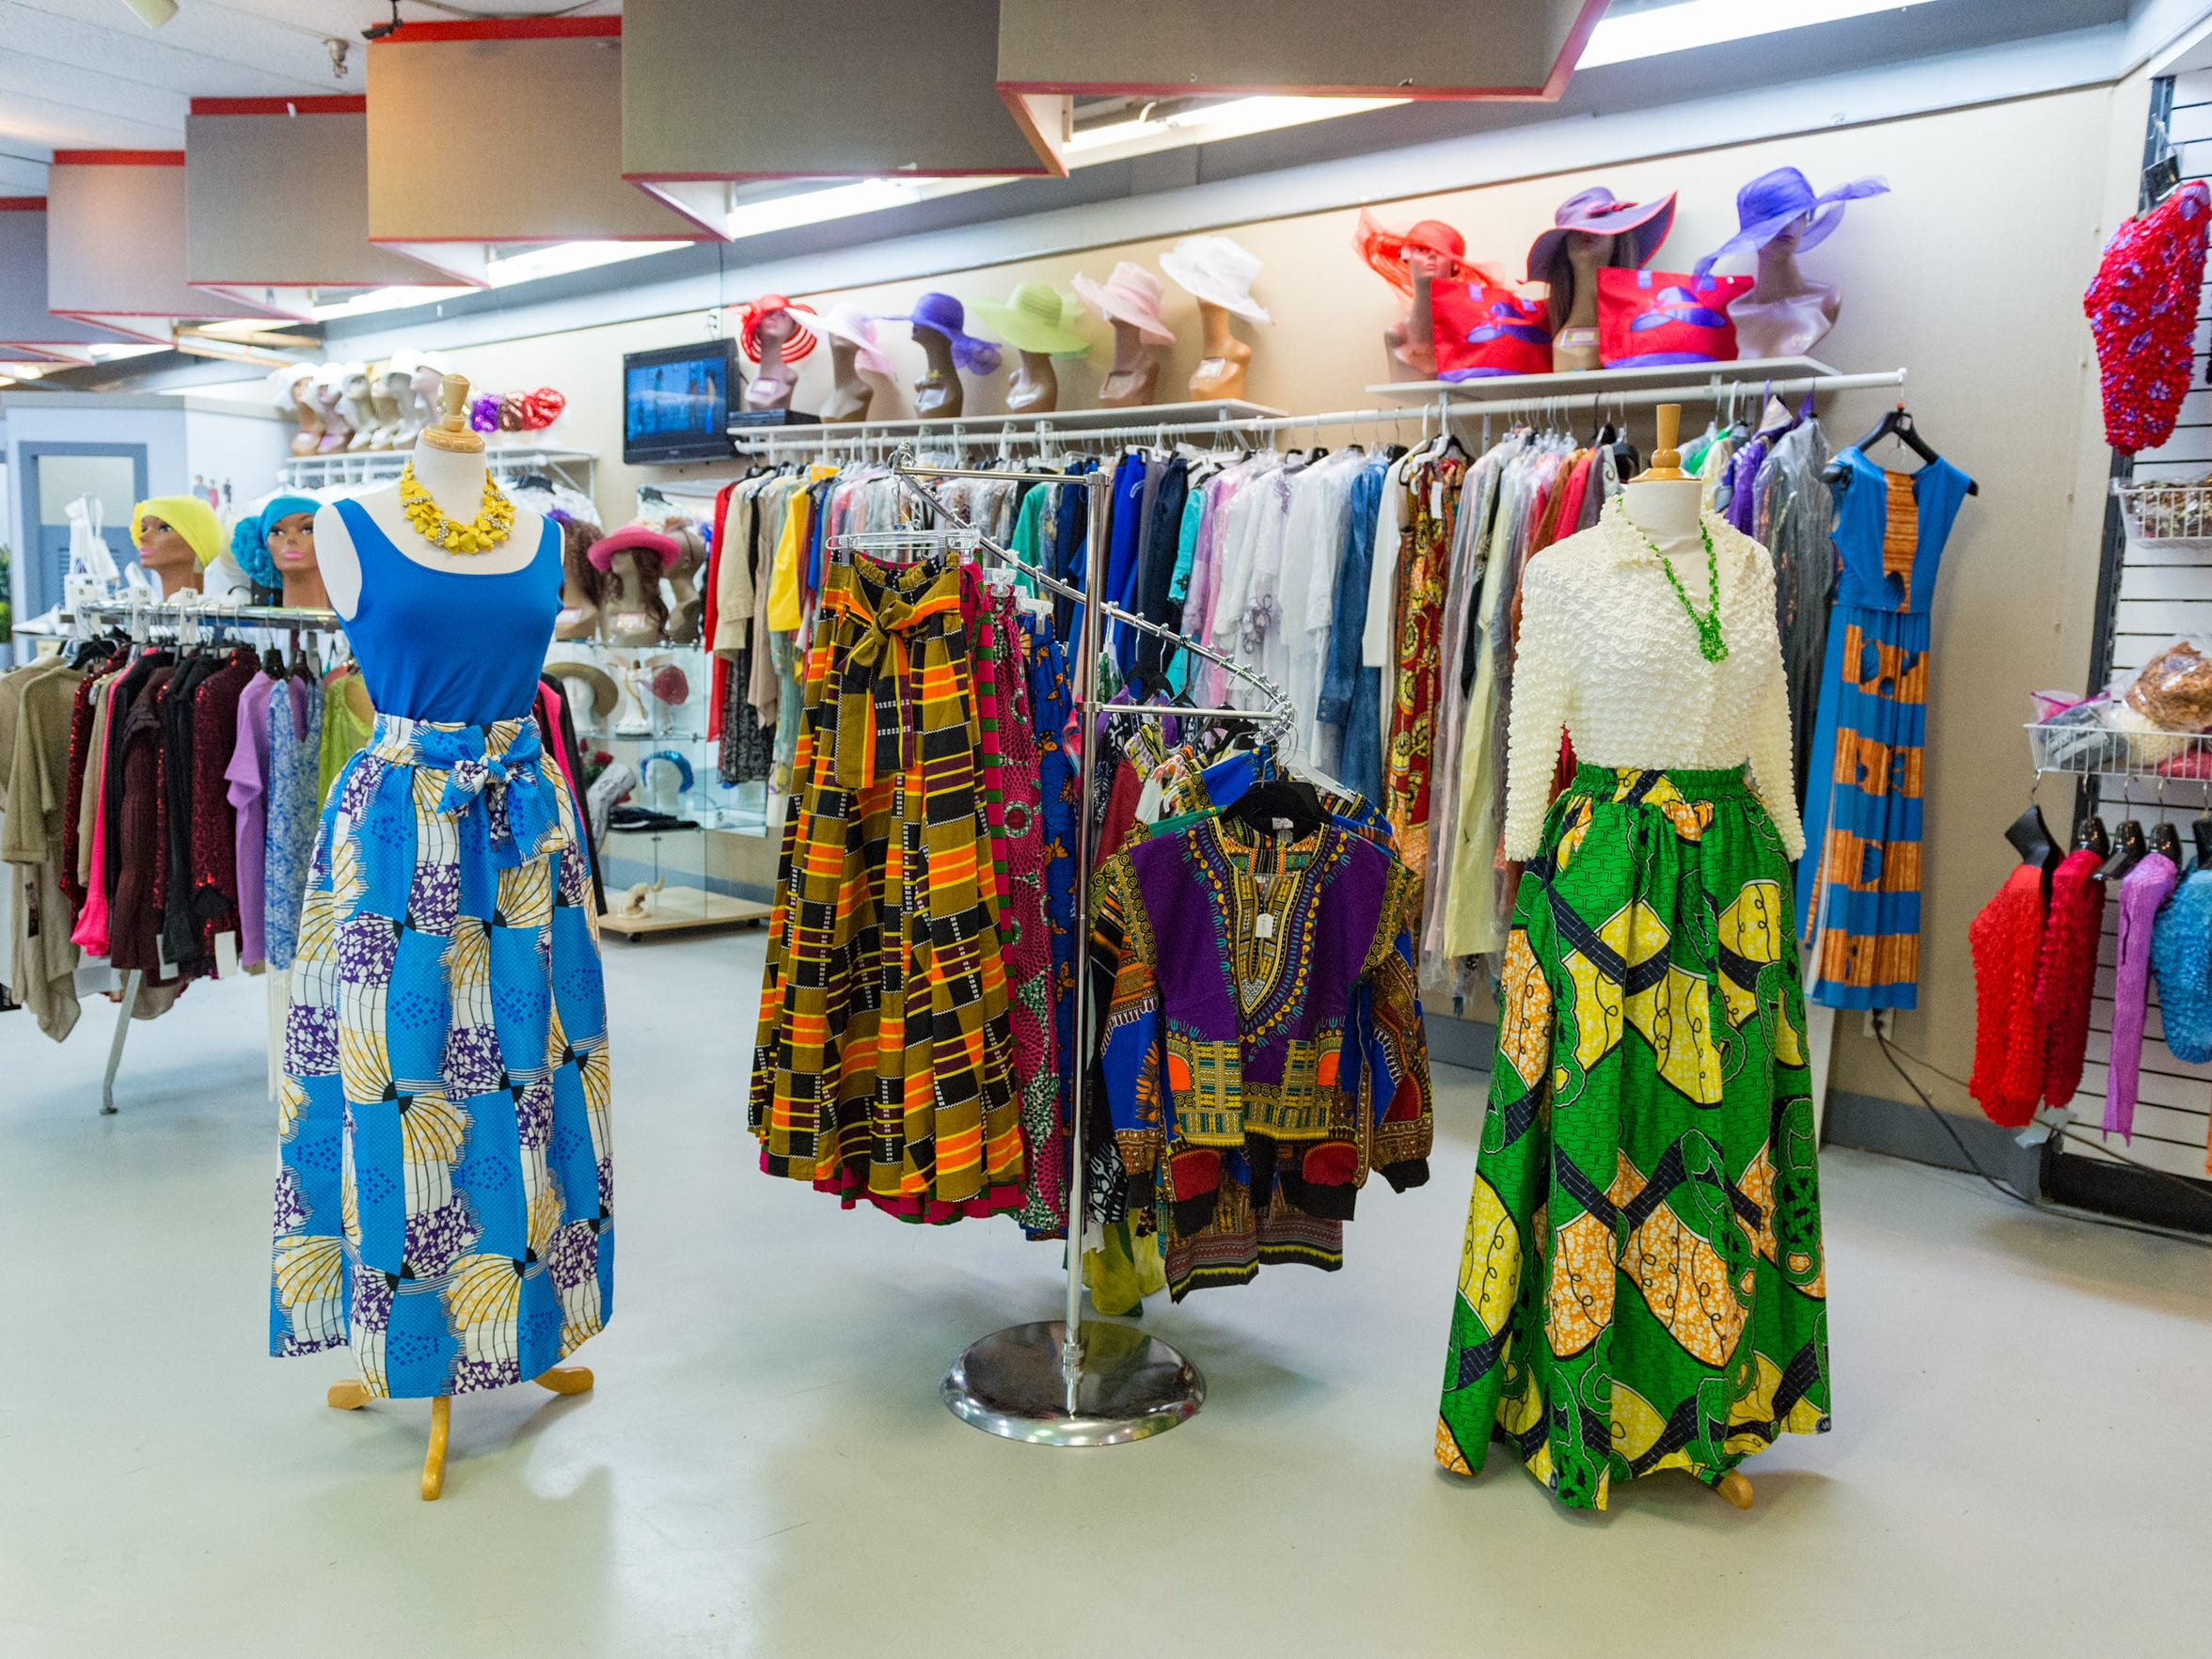 Lo's Boutique carries a variety of upscale clothing and accessories.